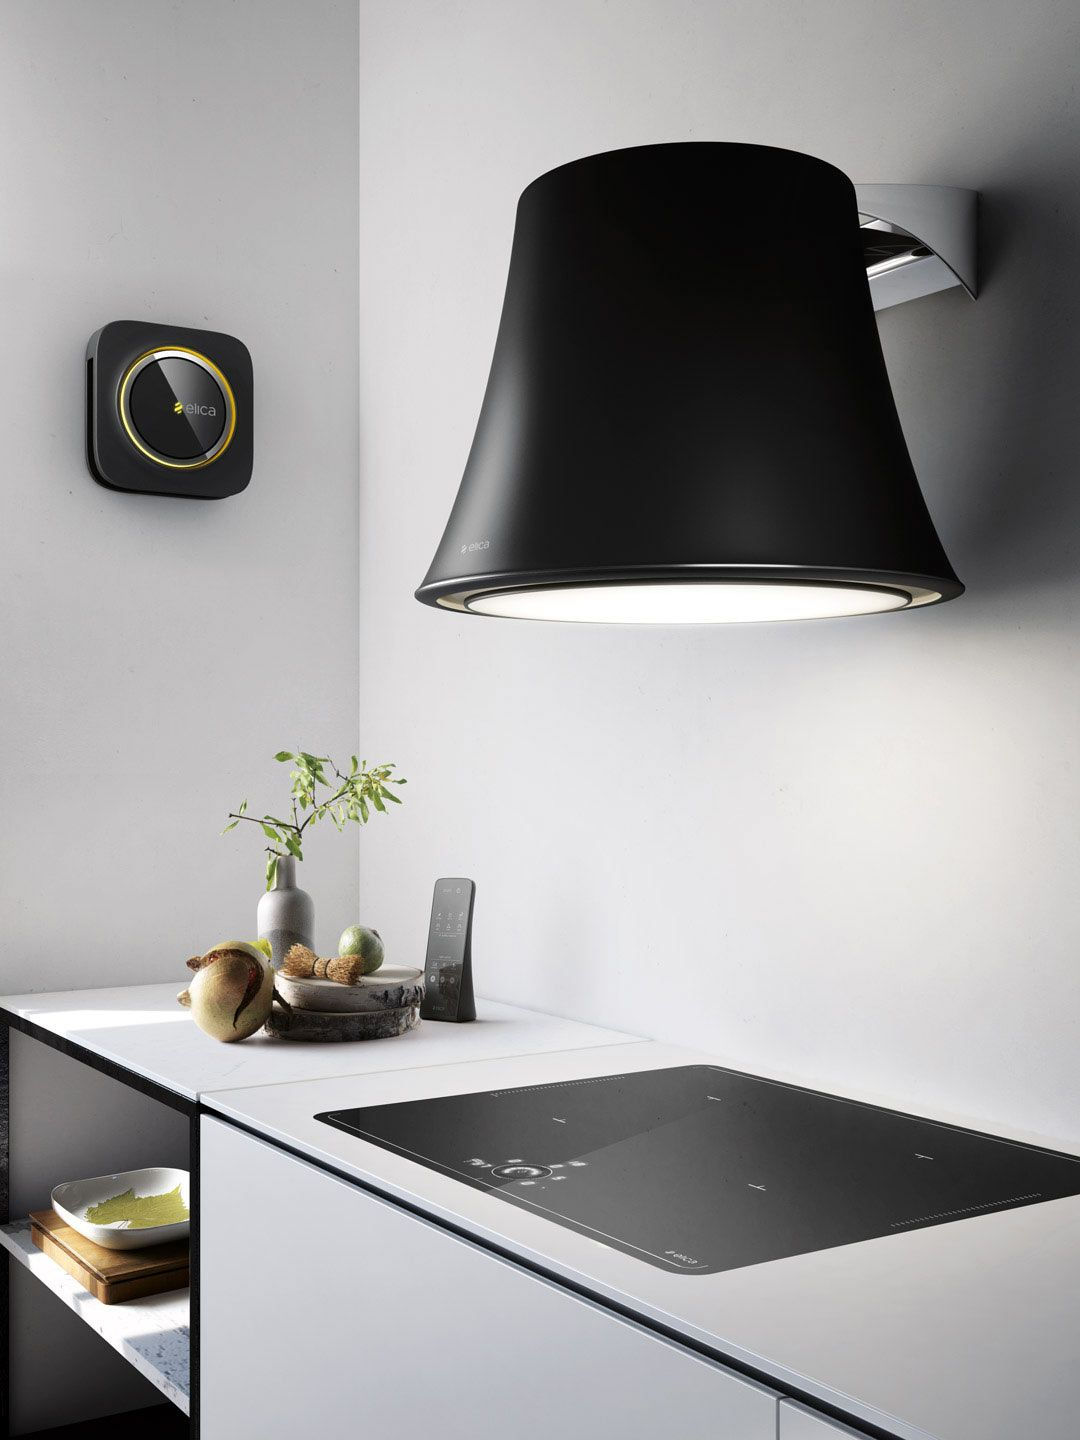 Snap by Elica - Design your air | DK nel 2019 | Cappa cucina ...